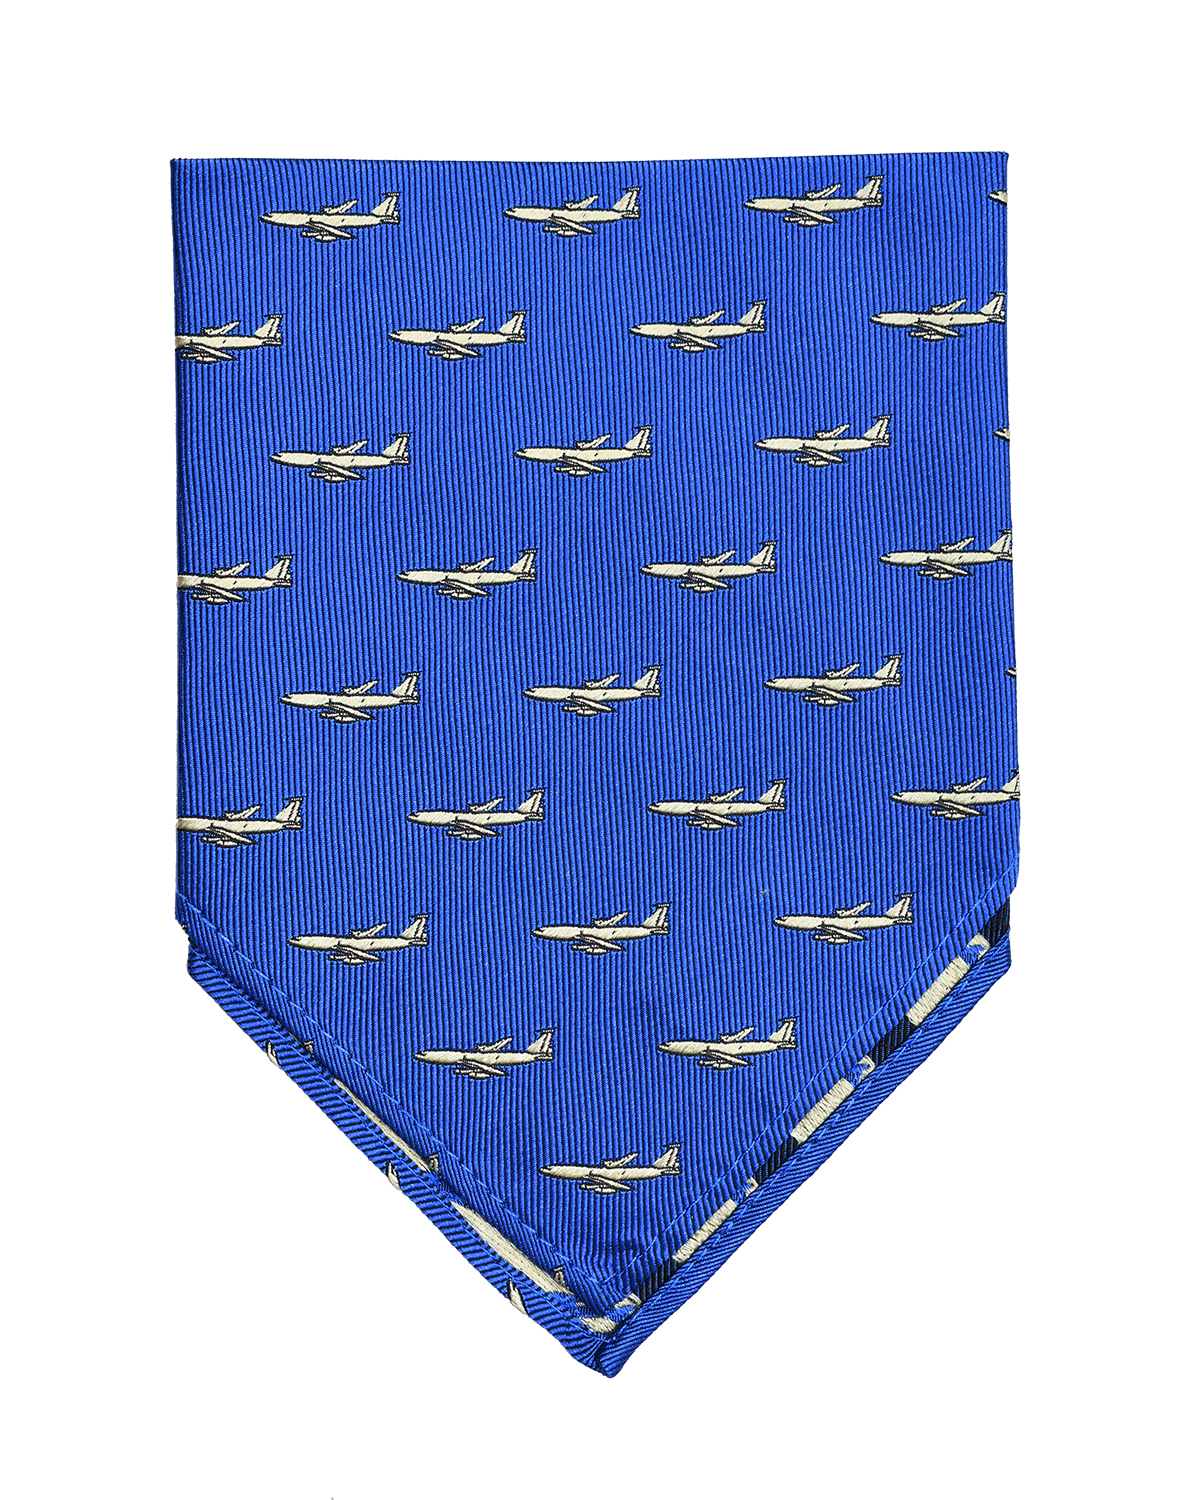 doppeldecker design aviation aircraft airplane pocket square kc-135 kc135